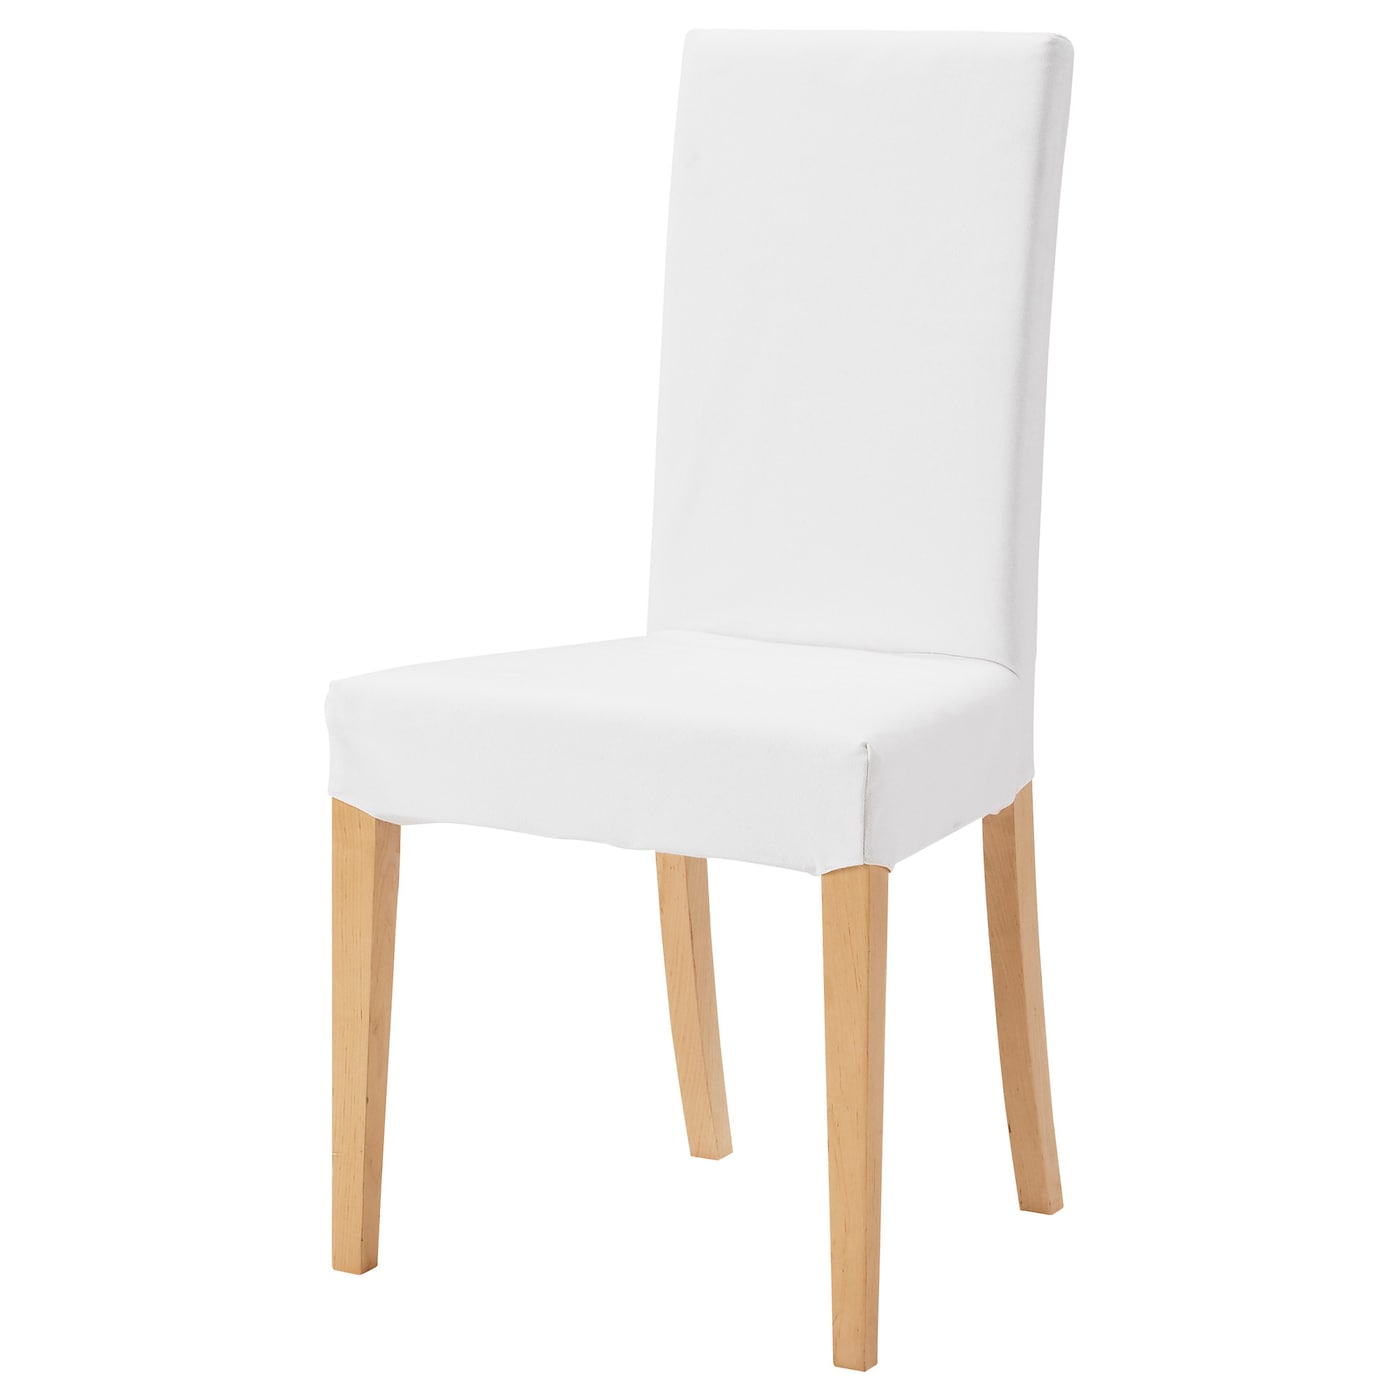 HARRY Chair Birch blekinge white IKEA